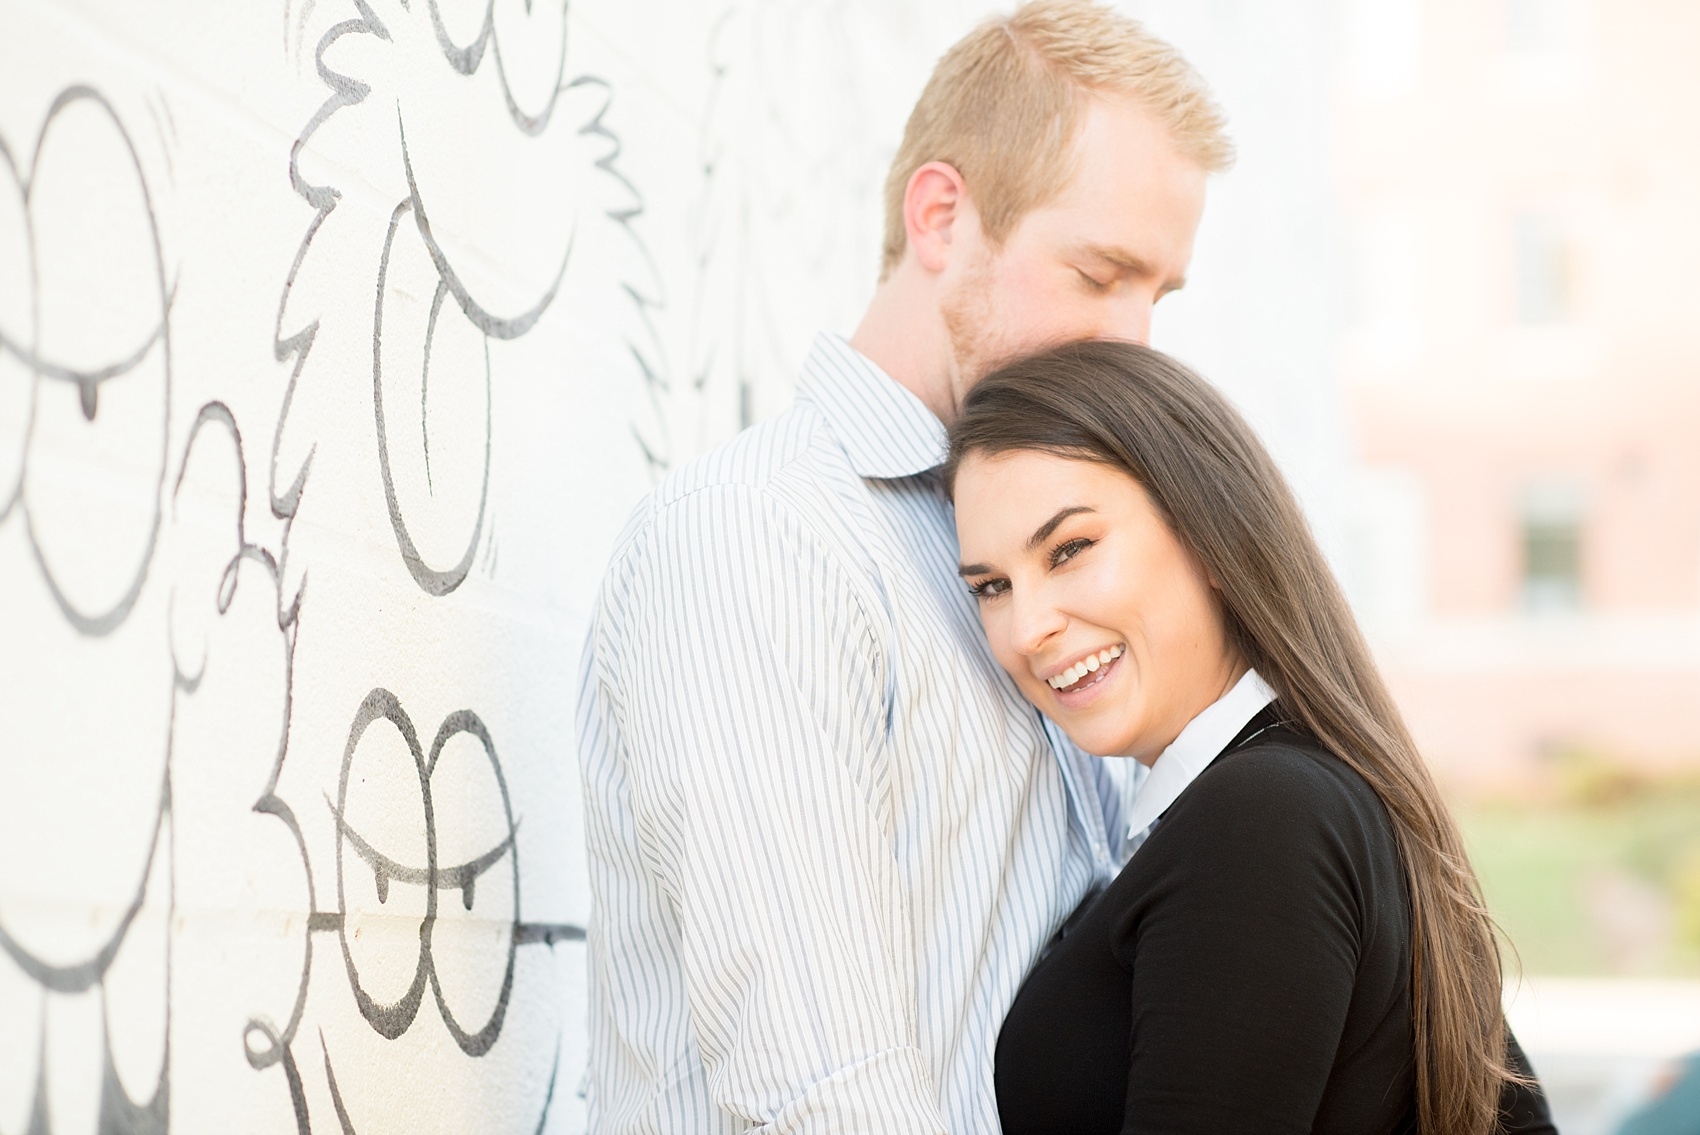 Mikkel Paige Photography photos of a downtown Raleigh engagement session with comical, fun murals.